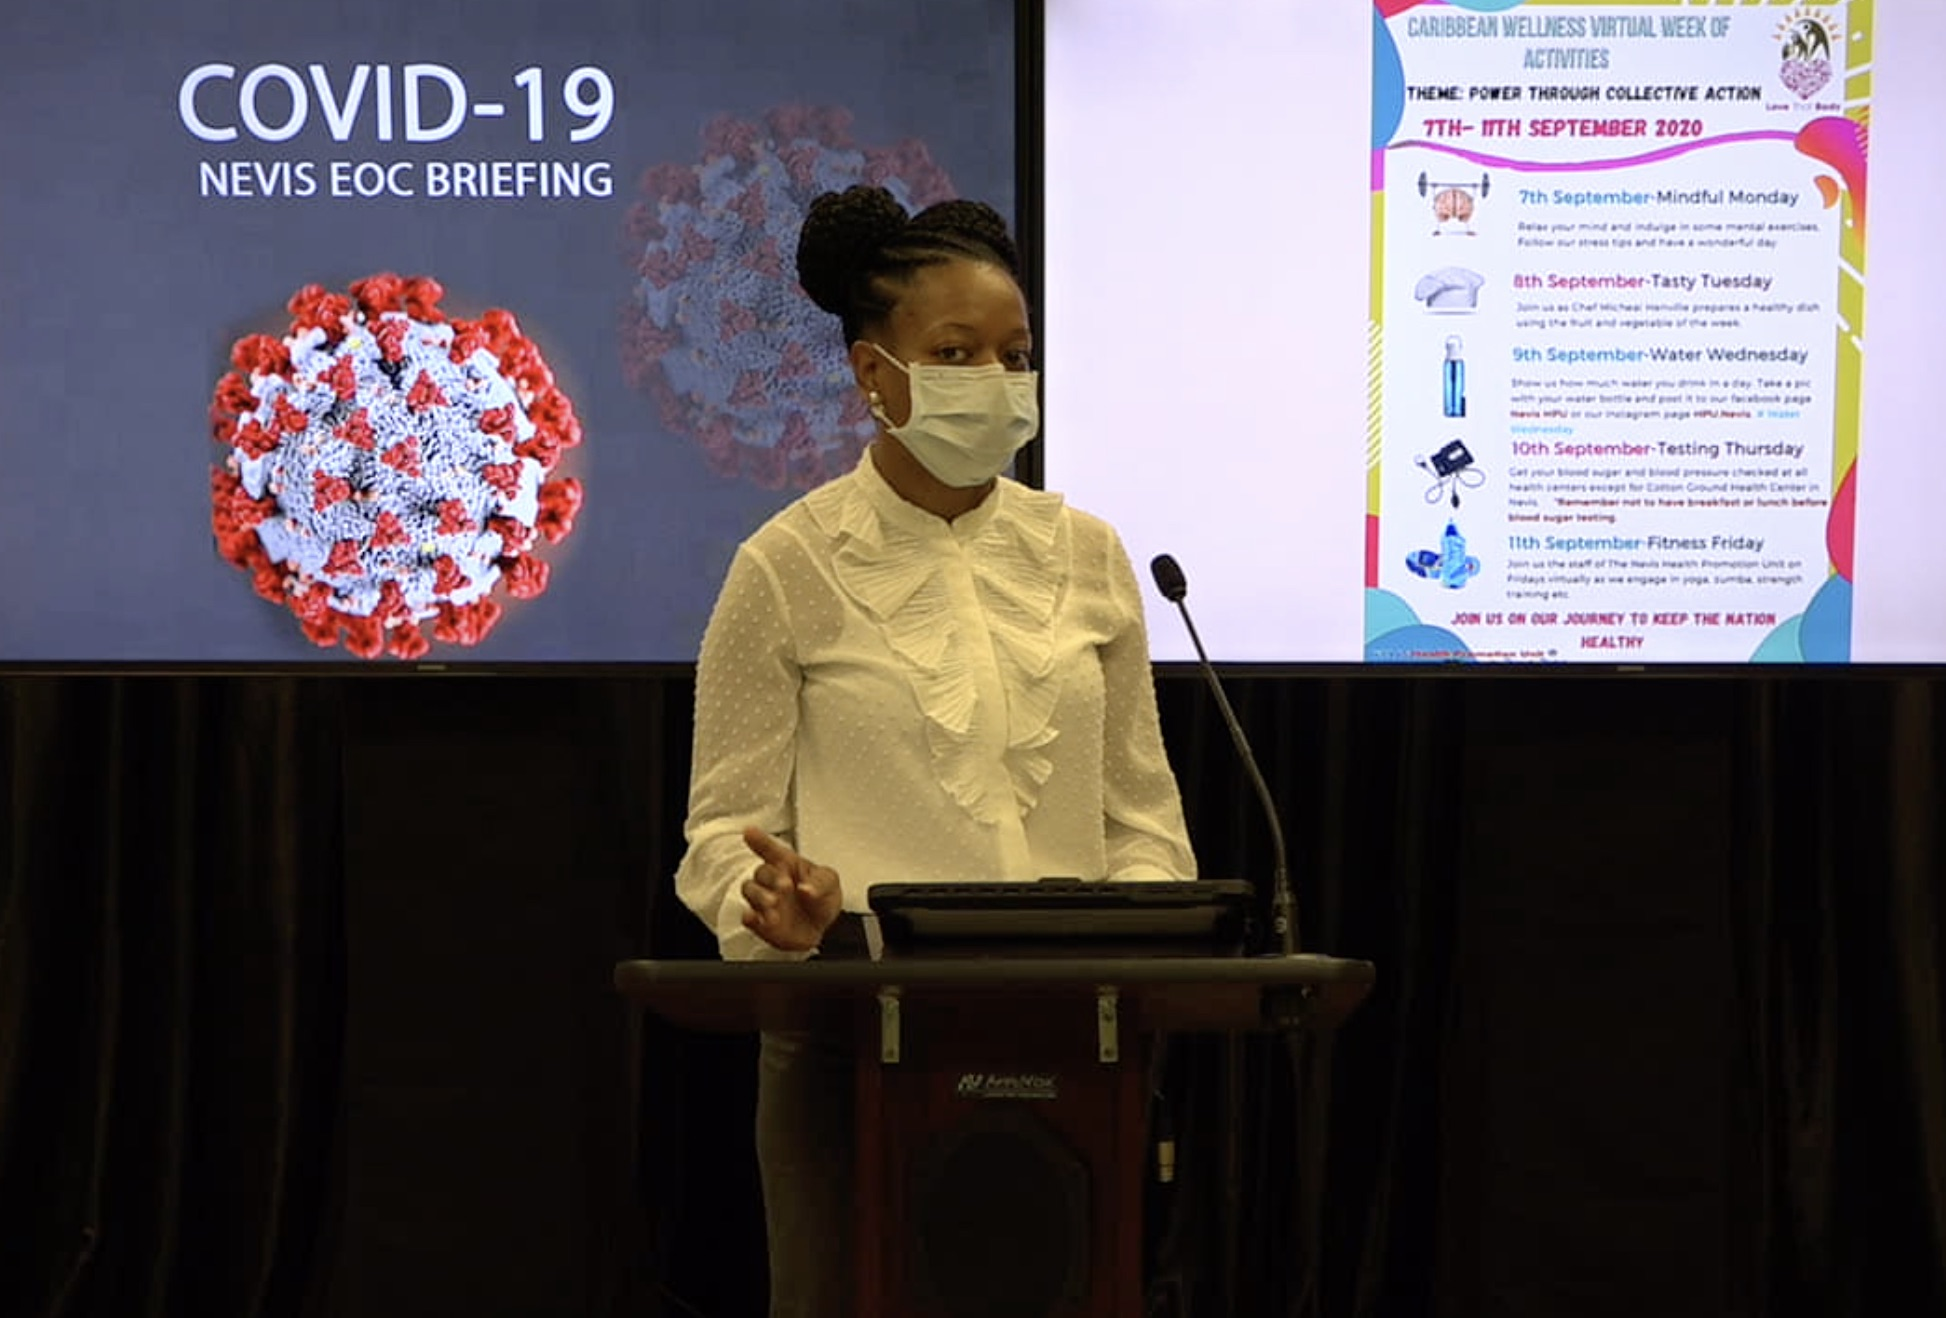 Ms. Shevanee Nisbett, Senior Health Educator at the Nevis Health Promotion Unit making a presentation at the Nevis COVID-19 Emergency Operations Centre Briefing on August 31, 2020